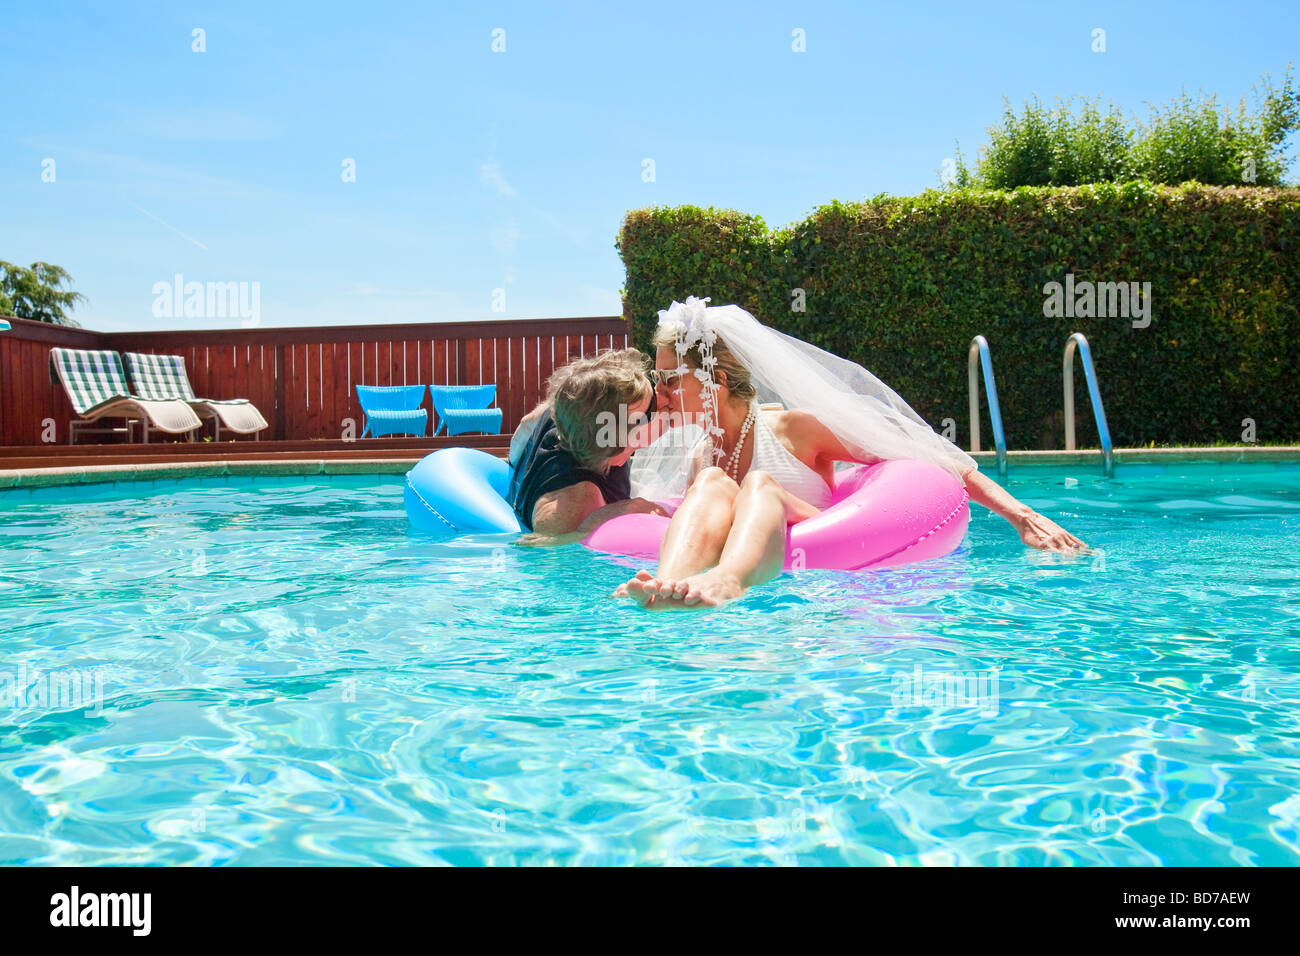 Bride and groom in swimming pool Stock Photo: 25362817 - Alamy